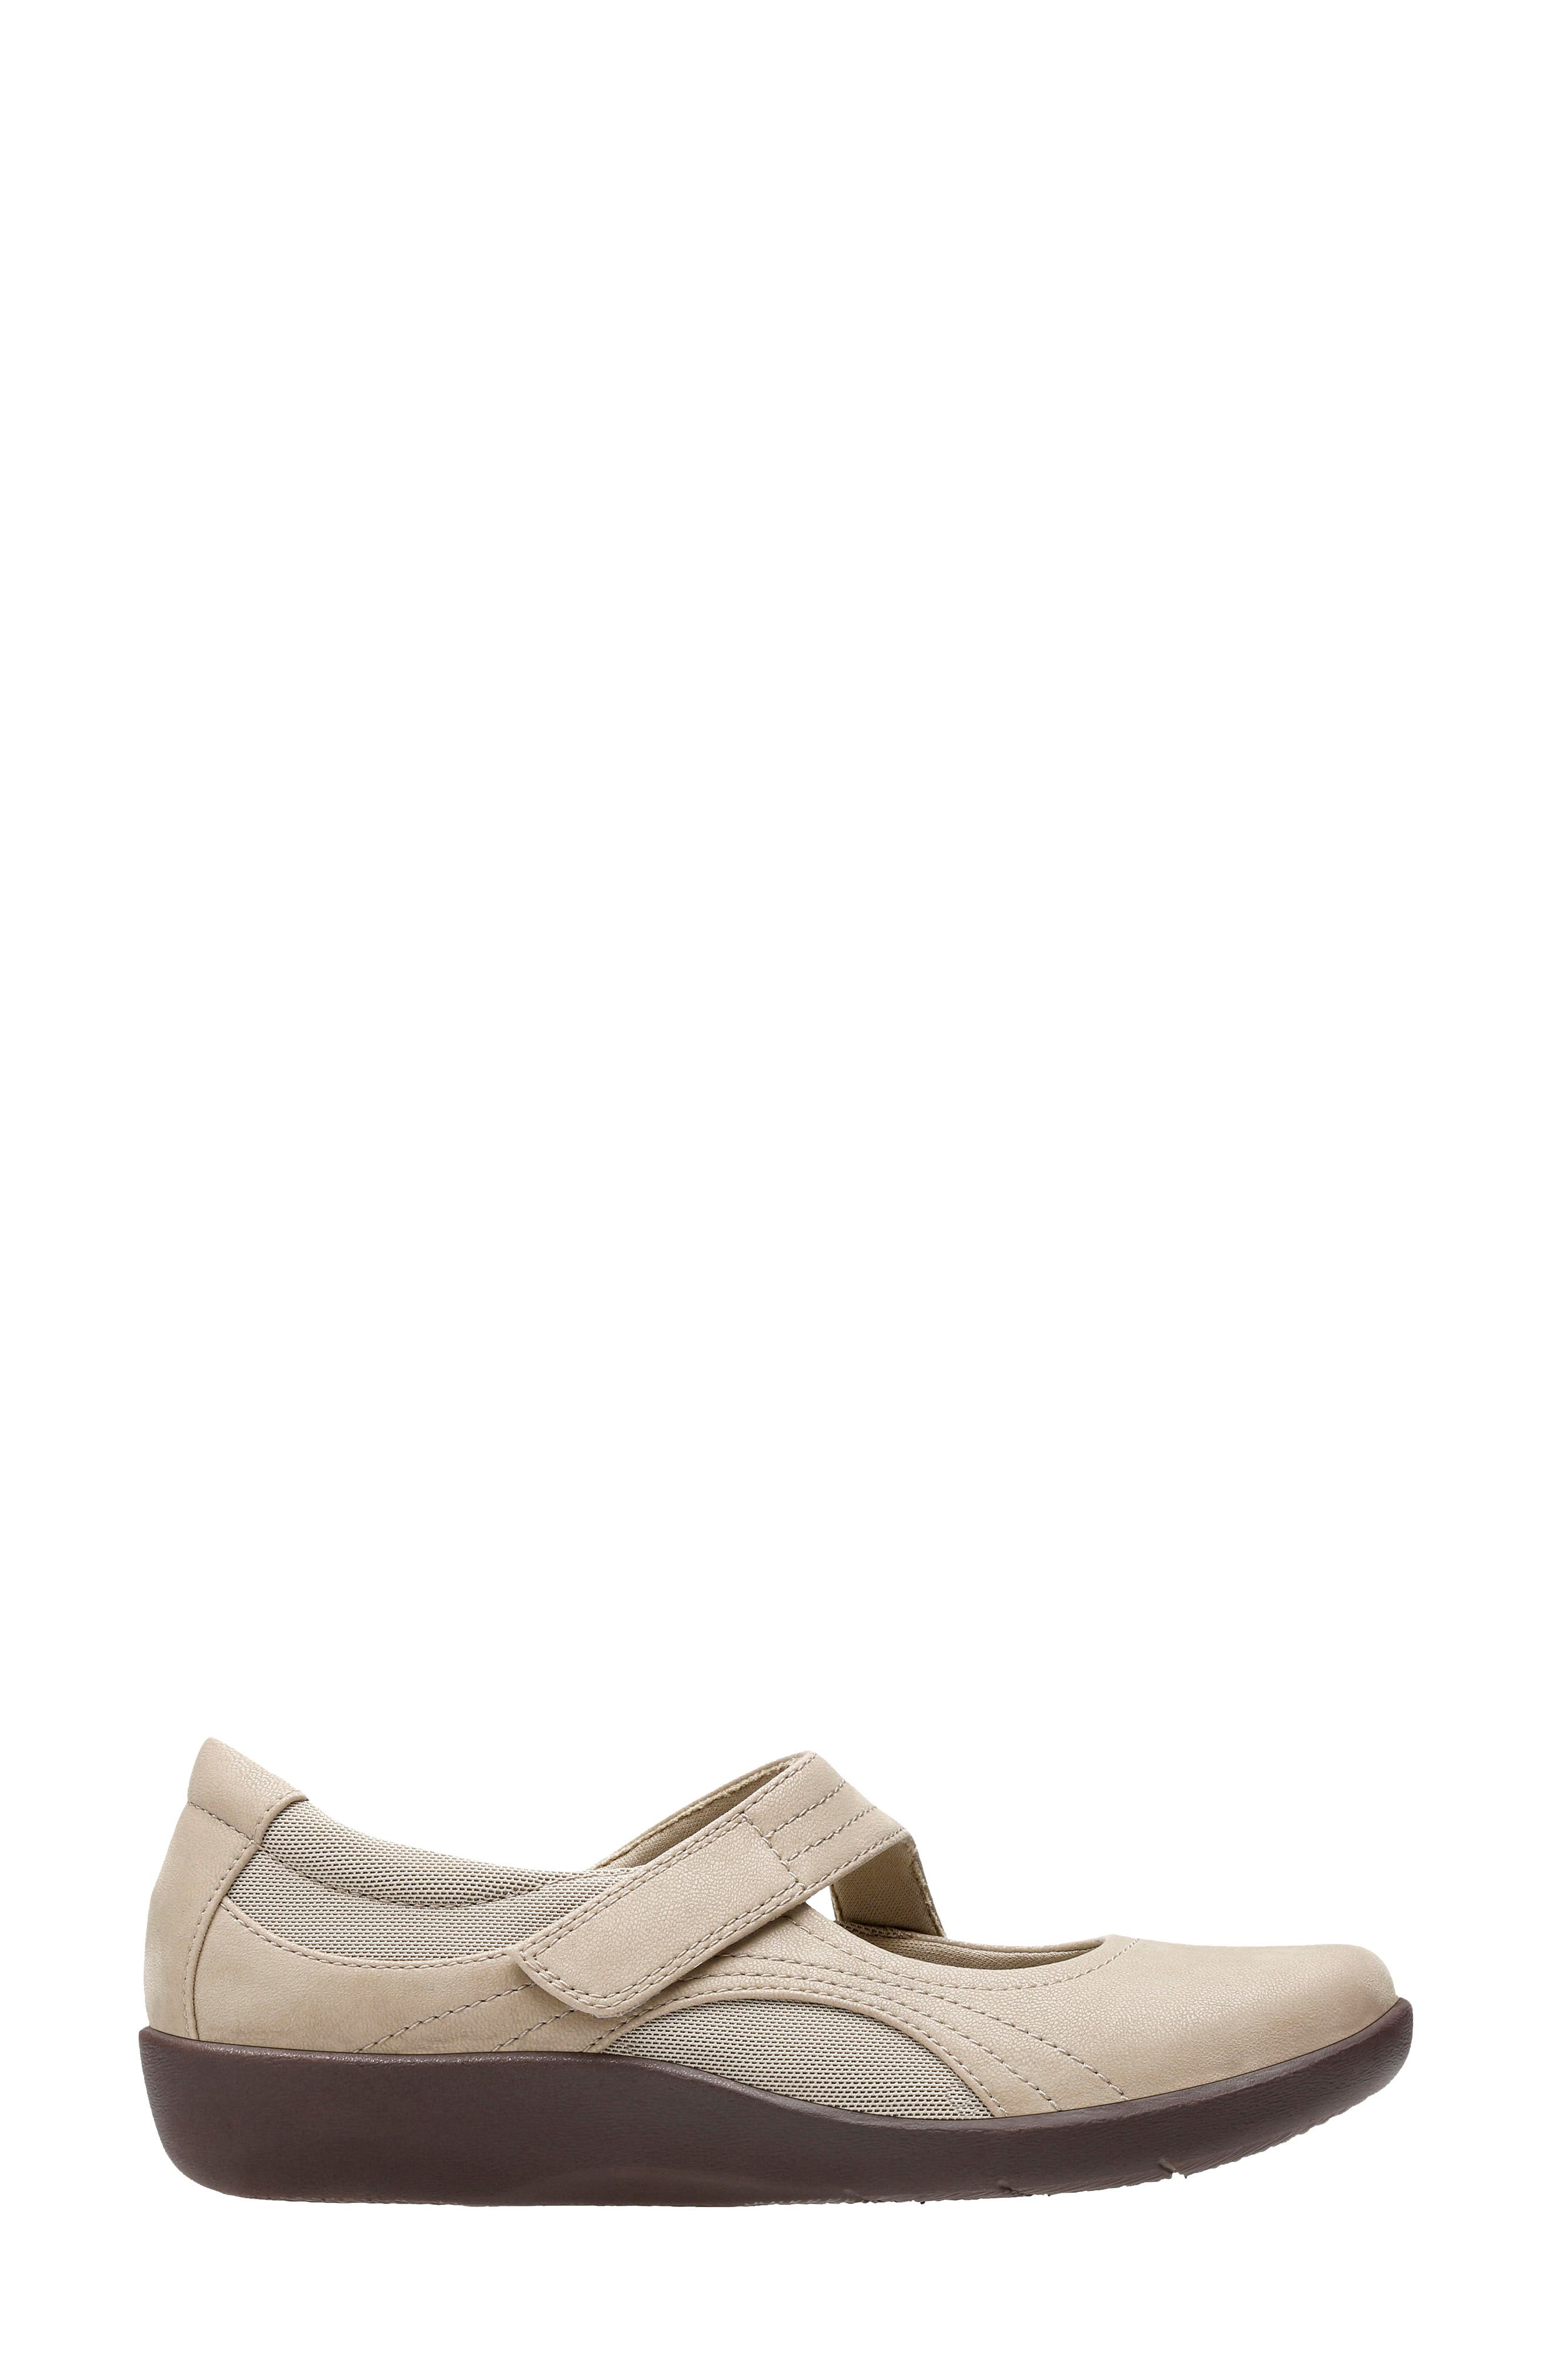 CLARKS<SUP>®</SUP>,                             Sillian Bella Mary Jane Flat,                             Alternate thumbnail 2, color,                             SAND SYNTHETIC NUBUCK